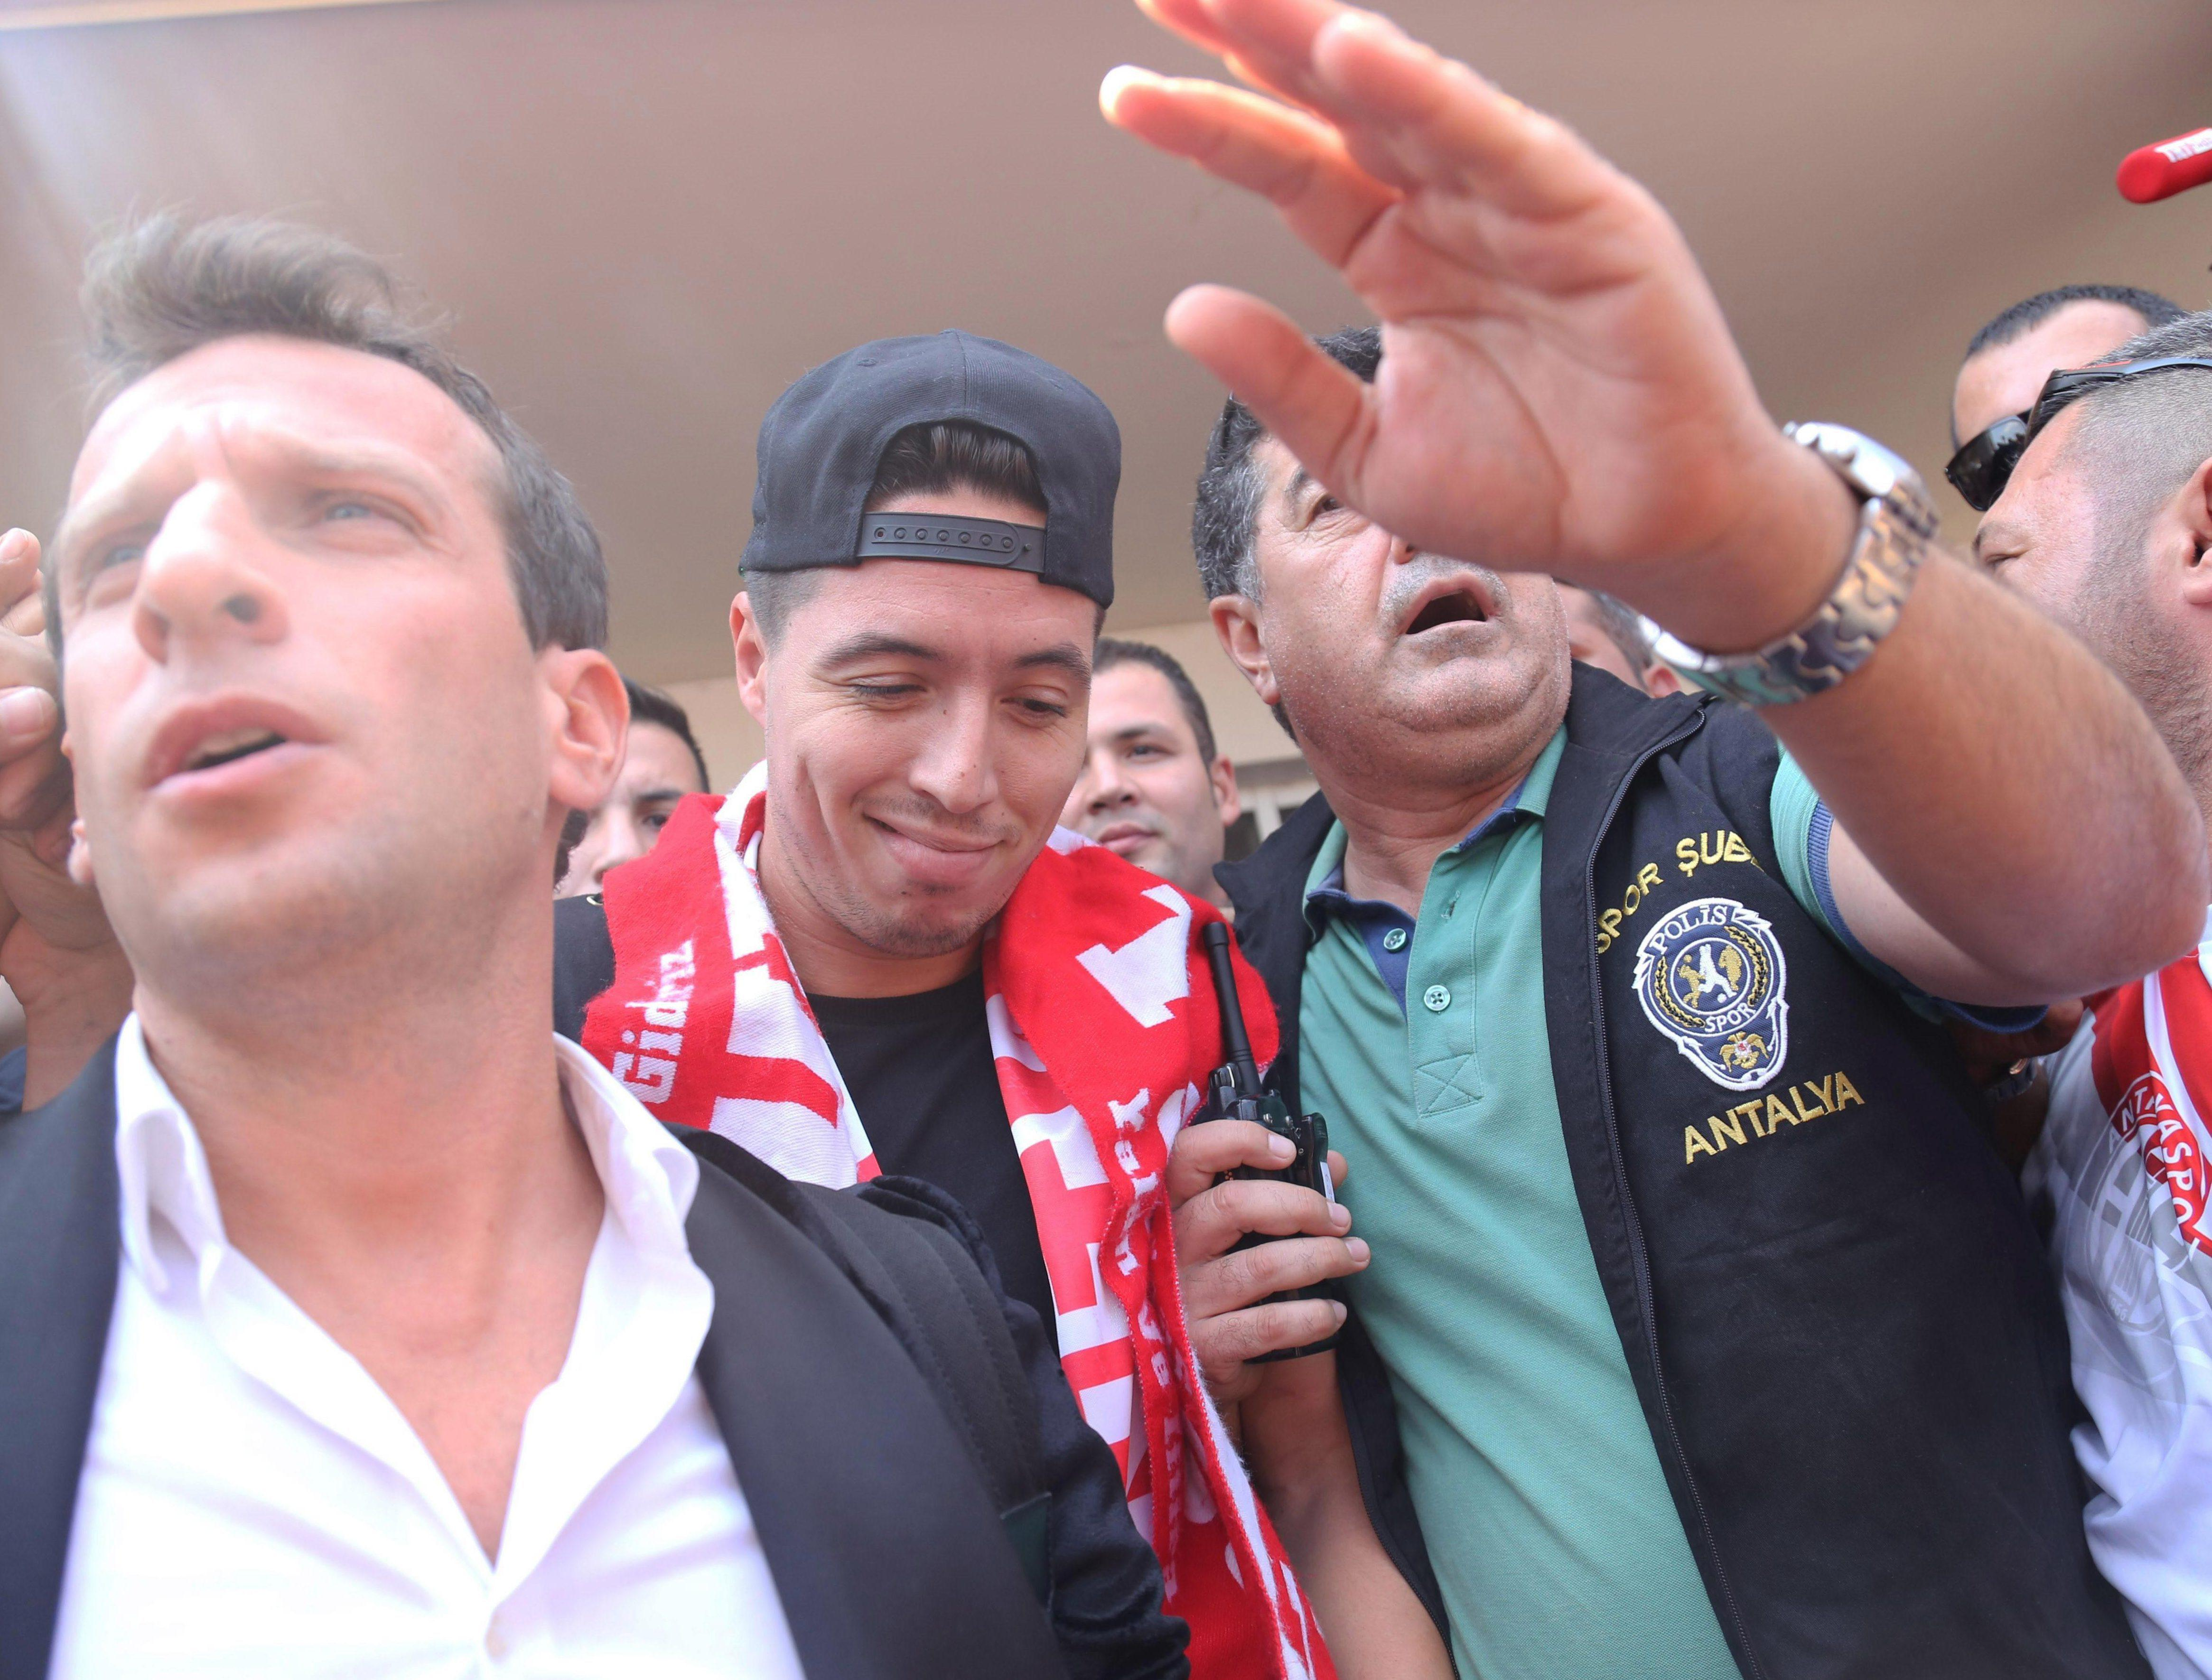 Samir Nasri was mobbed when he was announced as Antalyaspor's next big-money signing